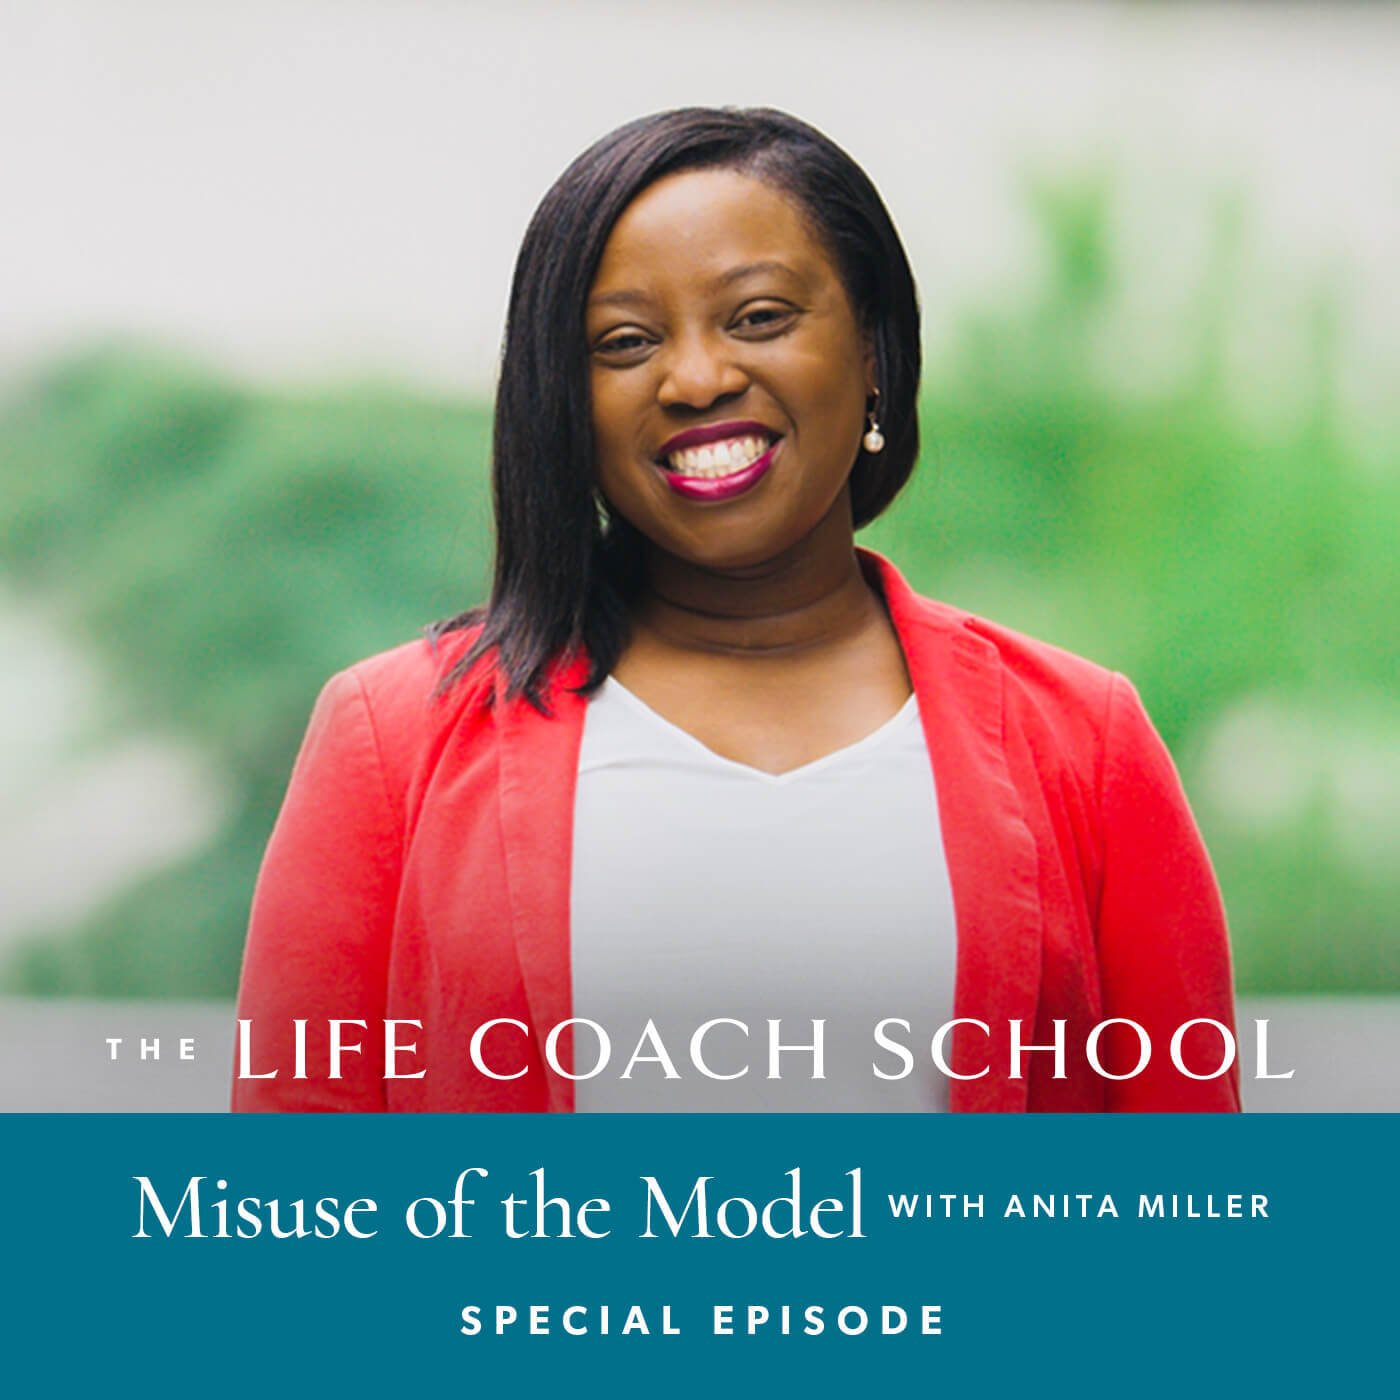 The Life Coach School Podcast with Brooke Castillo | Special Episode | Misuse of the Model with Anita Miller